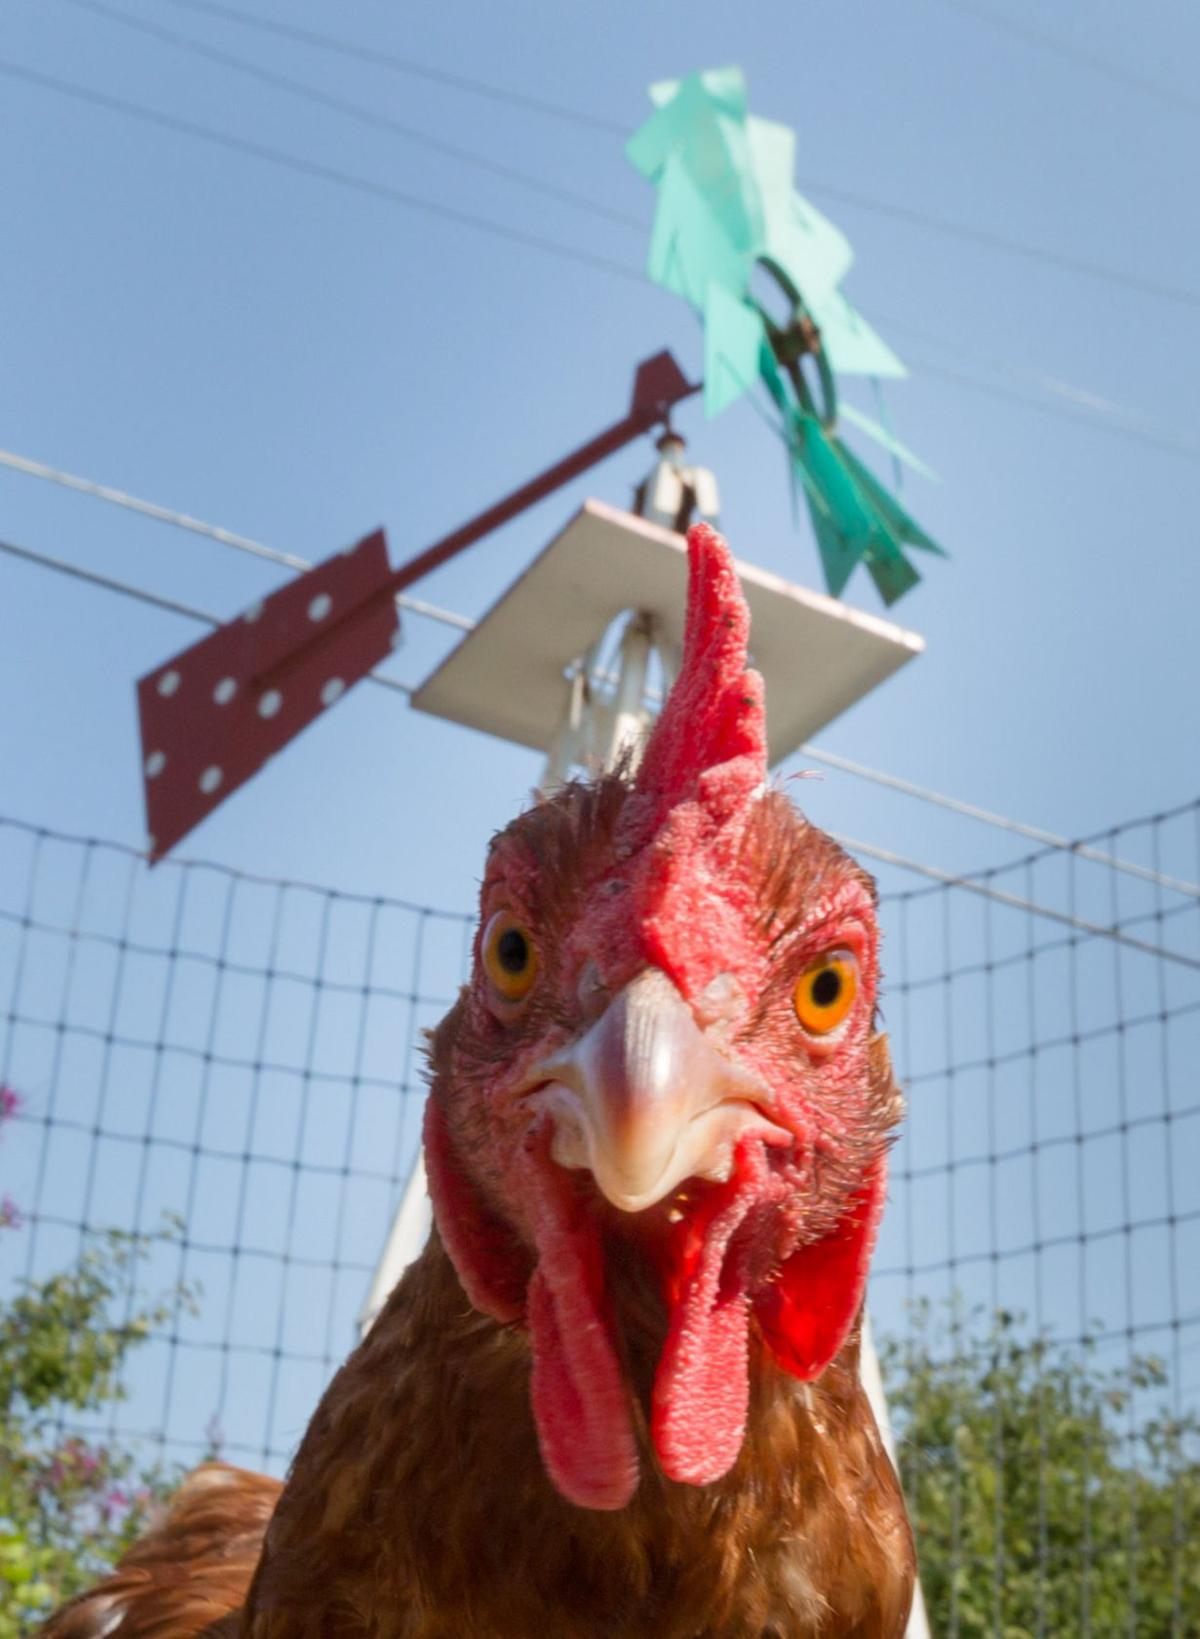 increase in salmonella outbreaks linked to live poultry reminds